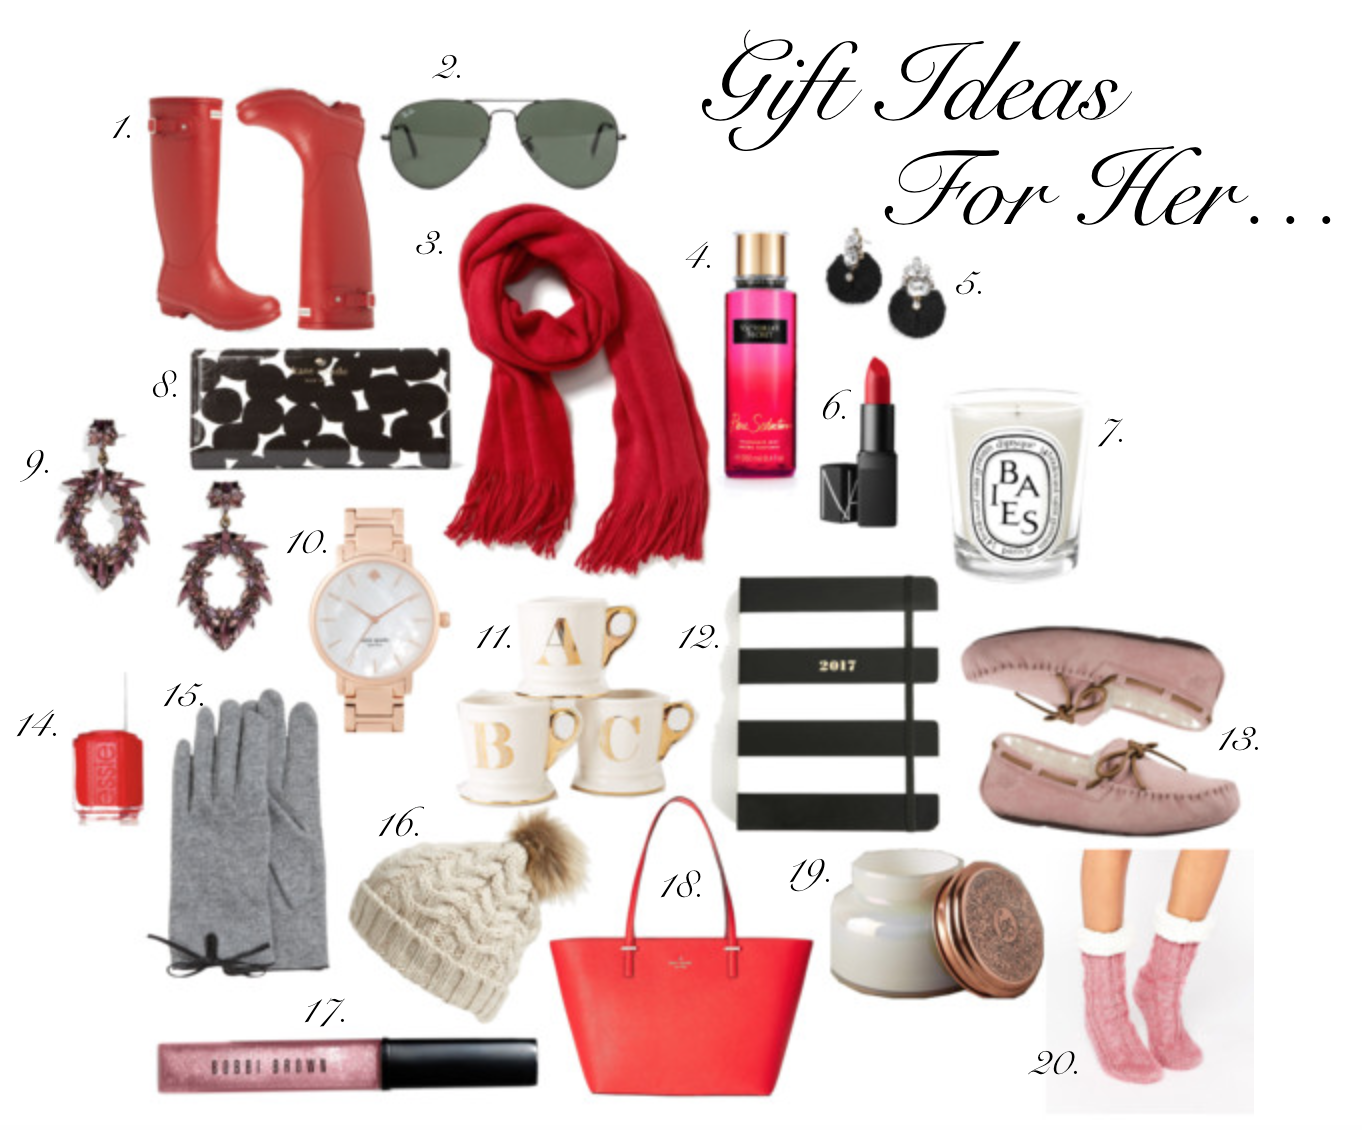 Gift Ideas For Her...